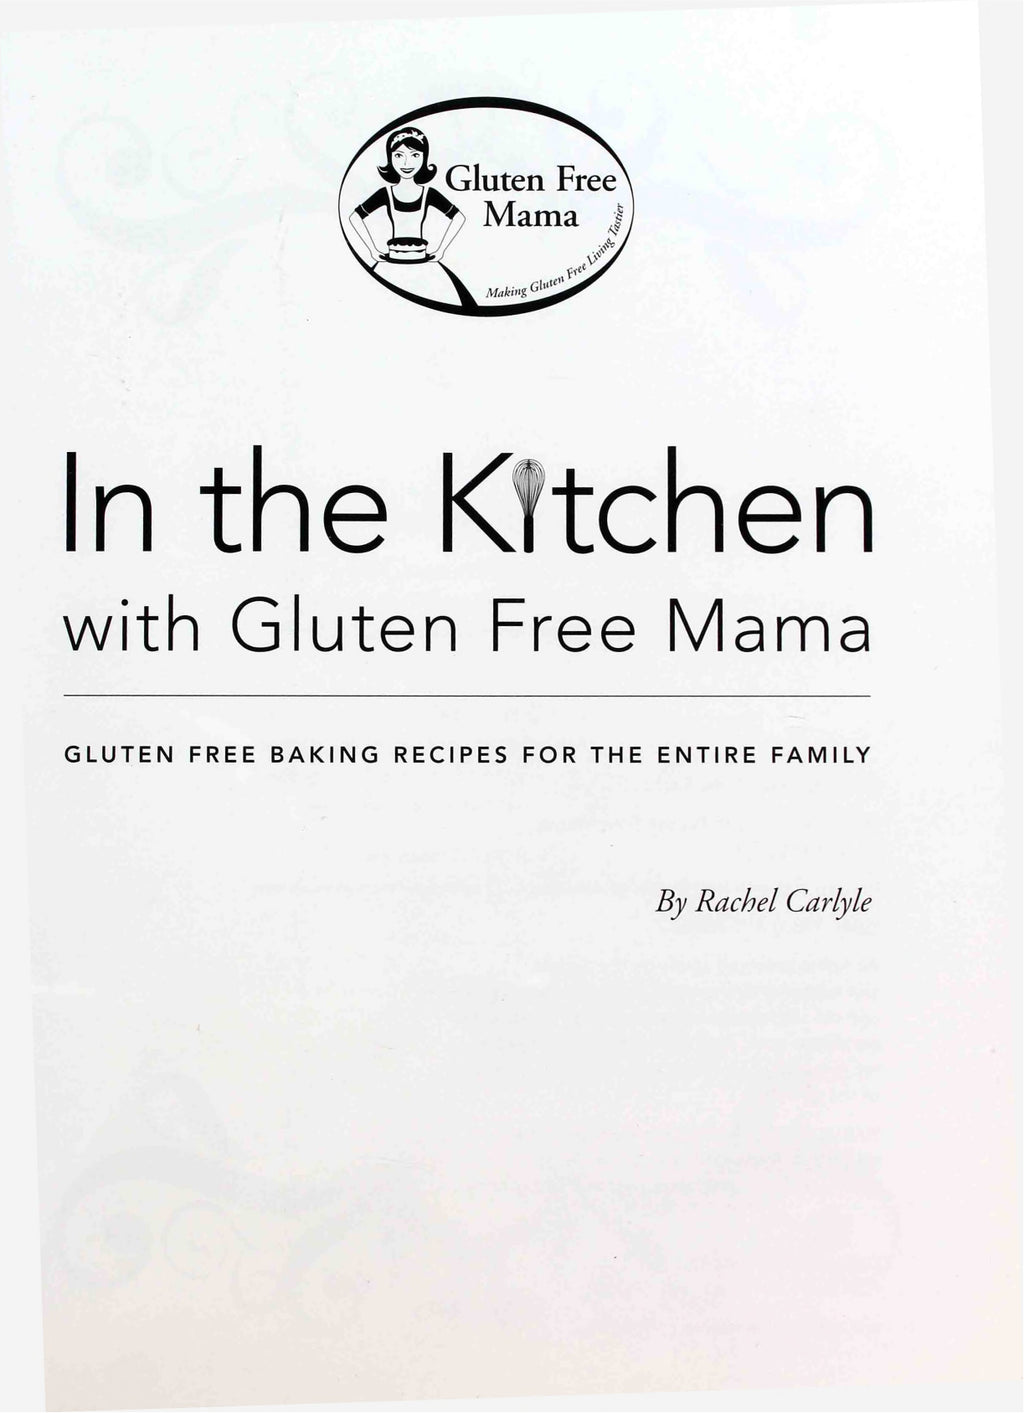 Gluten Free Mama Cookbook *DIGITAL DOWNLOAD*